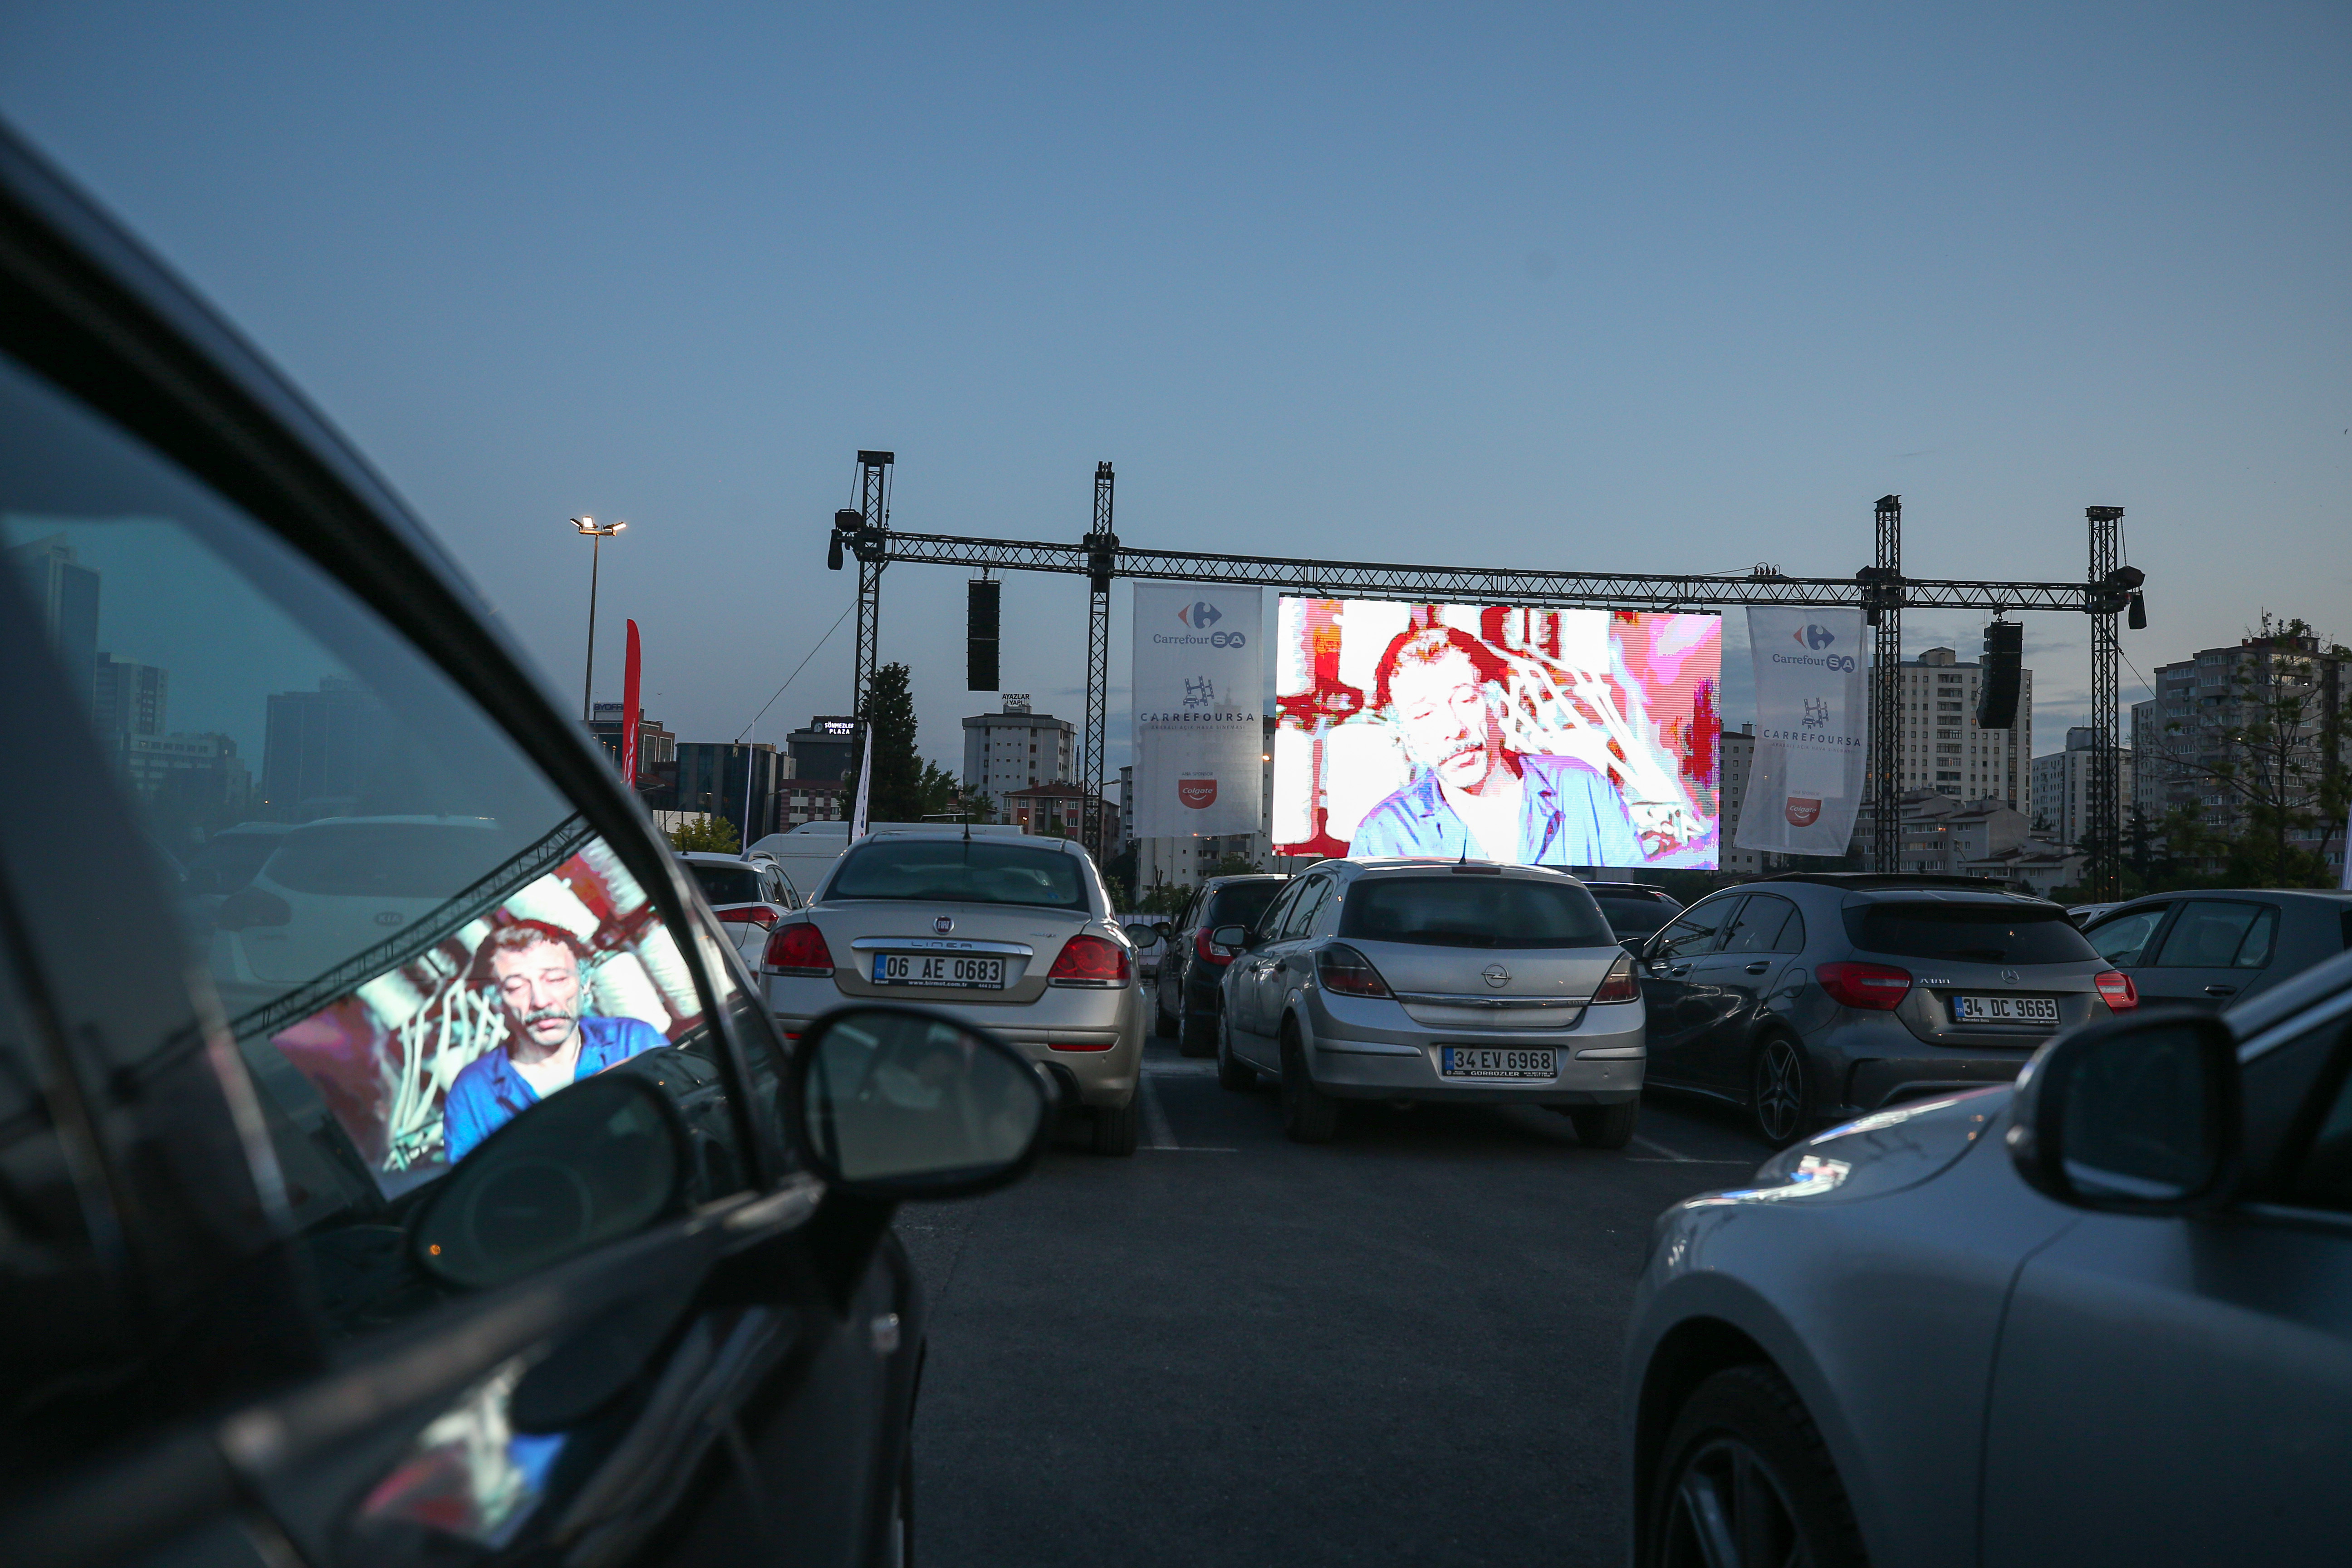 """ISTANBUL, TURKEY - MAY 28: A view of cars during drive-in-theatre amid coronavirus (Covid-19) pandemic organized by CarrefourSA in Istanbul, Turkey on May 28, 2020. The Turkish movie """"Our Family"""" was screened on the theatre. (Photo by Muhammed Enes Yildirim/Anadolu Agency via Getty Images)"""